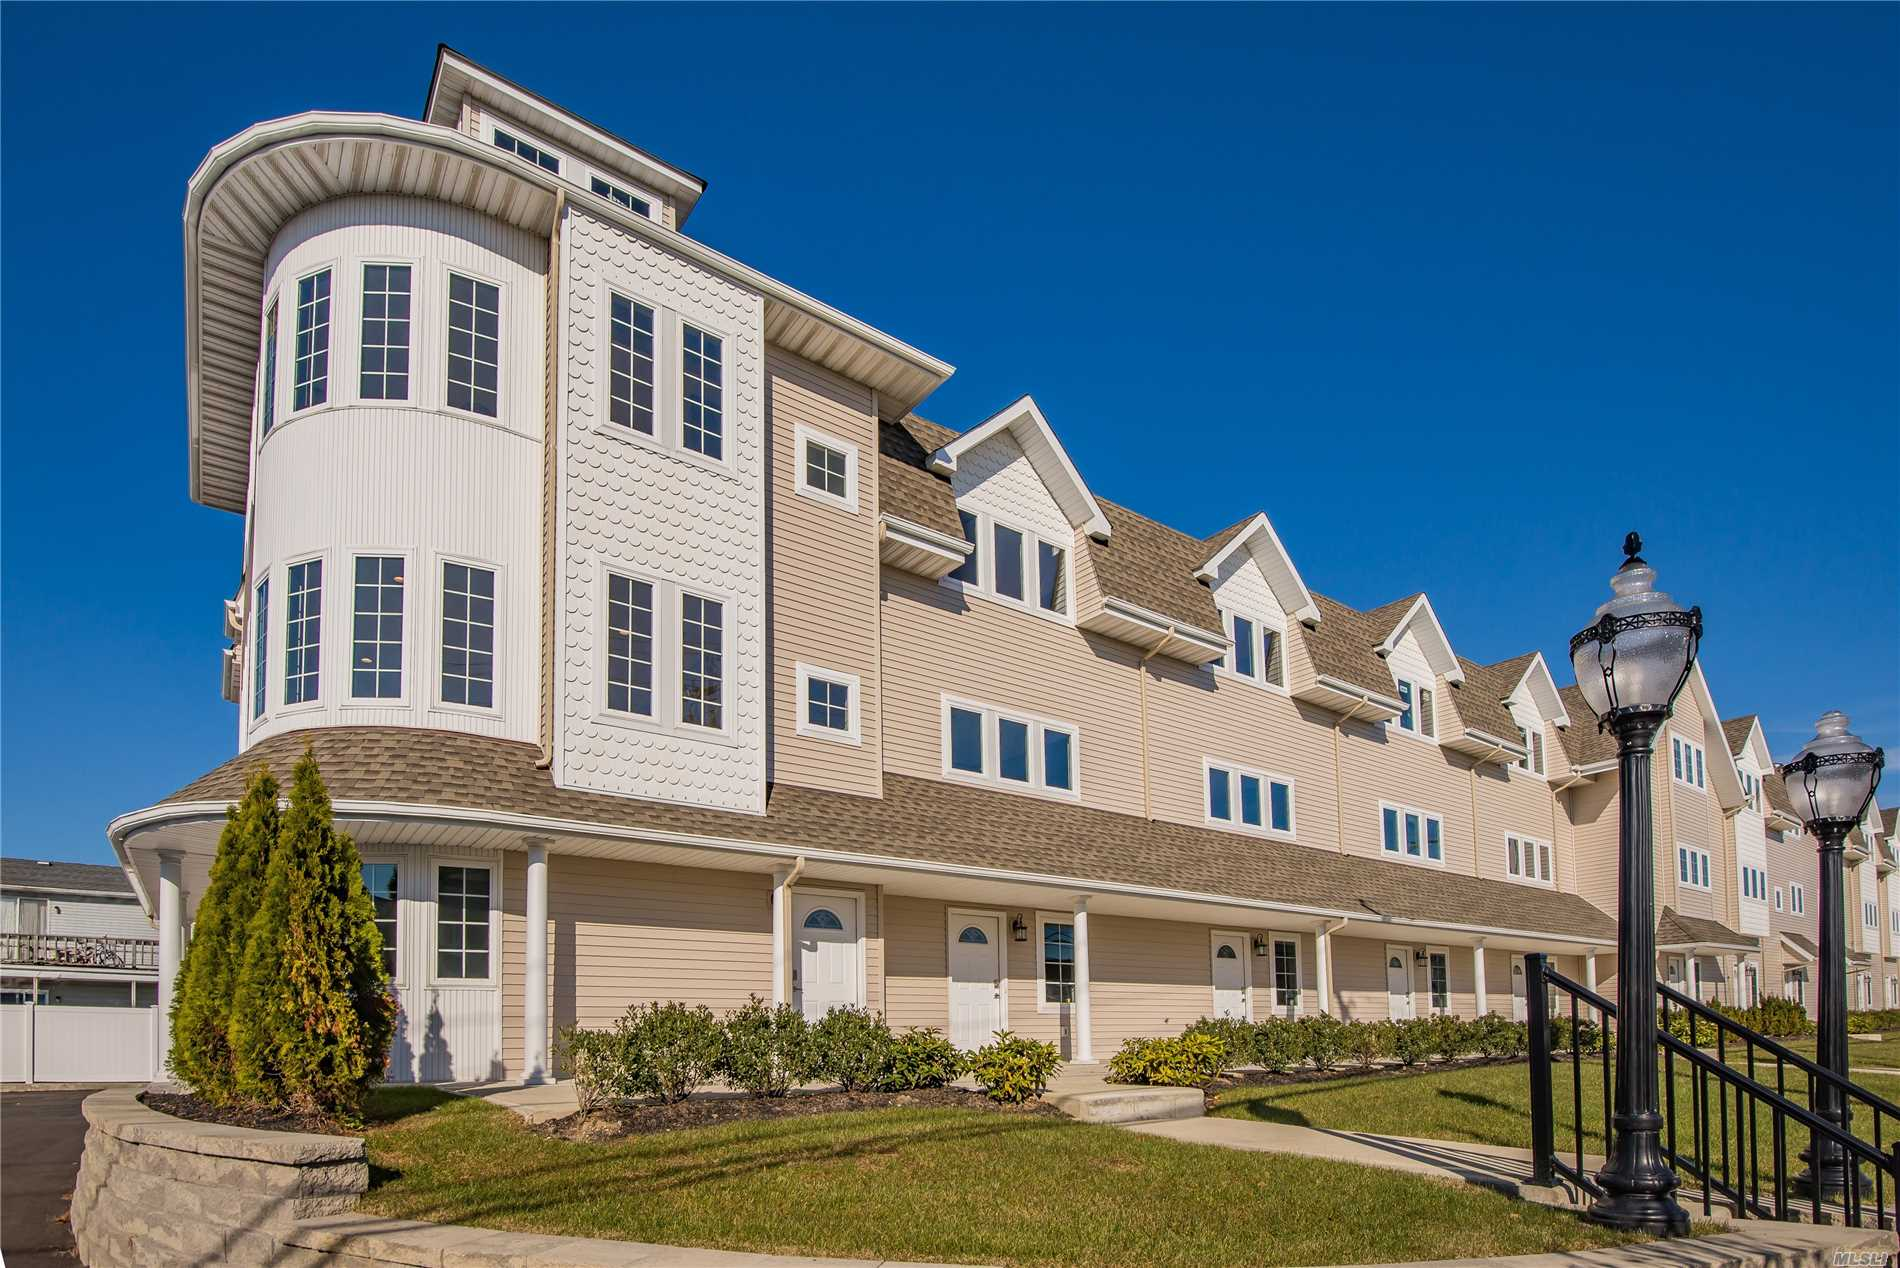 Brand New Gorgeous Townhouse (Unit #9) Features Fema-Compliant High Flr Elevation, 2 Bdrms, 2.5 Baths, 2-Car Gar, Entry Lvl Office/Den, Huge Wide-Open Main Lvl Living/Dining Rm Combo Next To Custom E-I-K W/Granite Ctops + Ss Appliances, Oak Flrs Throughout, & Prof Landscaping. Opportune Loc: Within Quiet Development Yet Close To The Mile, Marinas, Dining, Shops, Rr, +++!